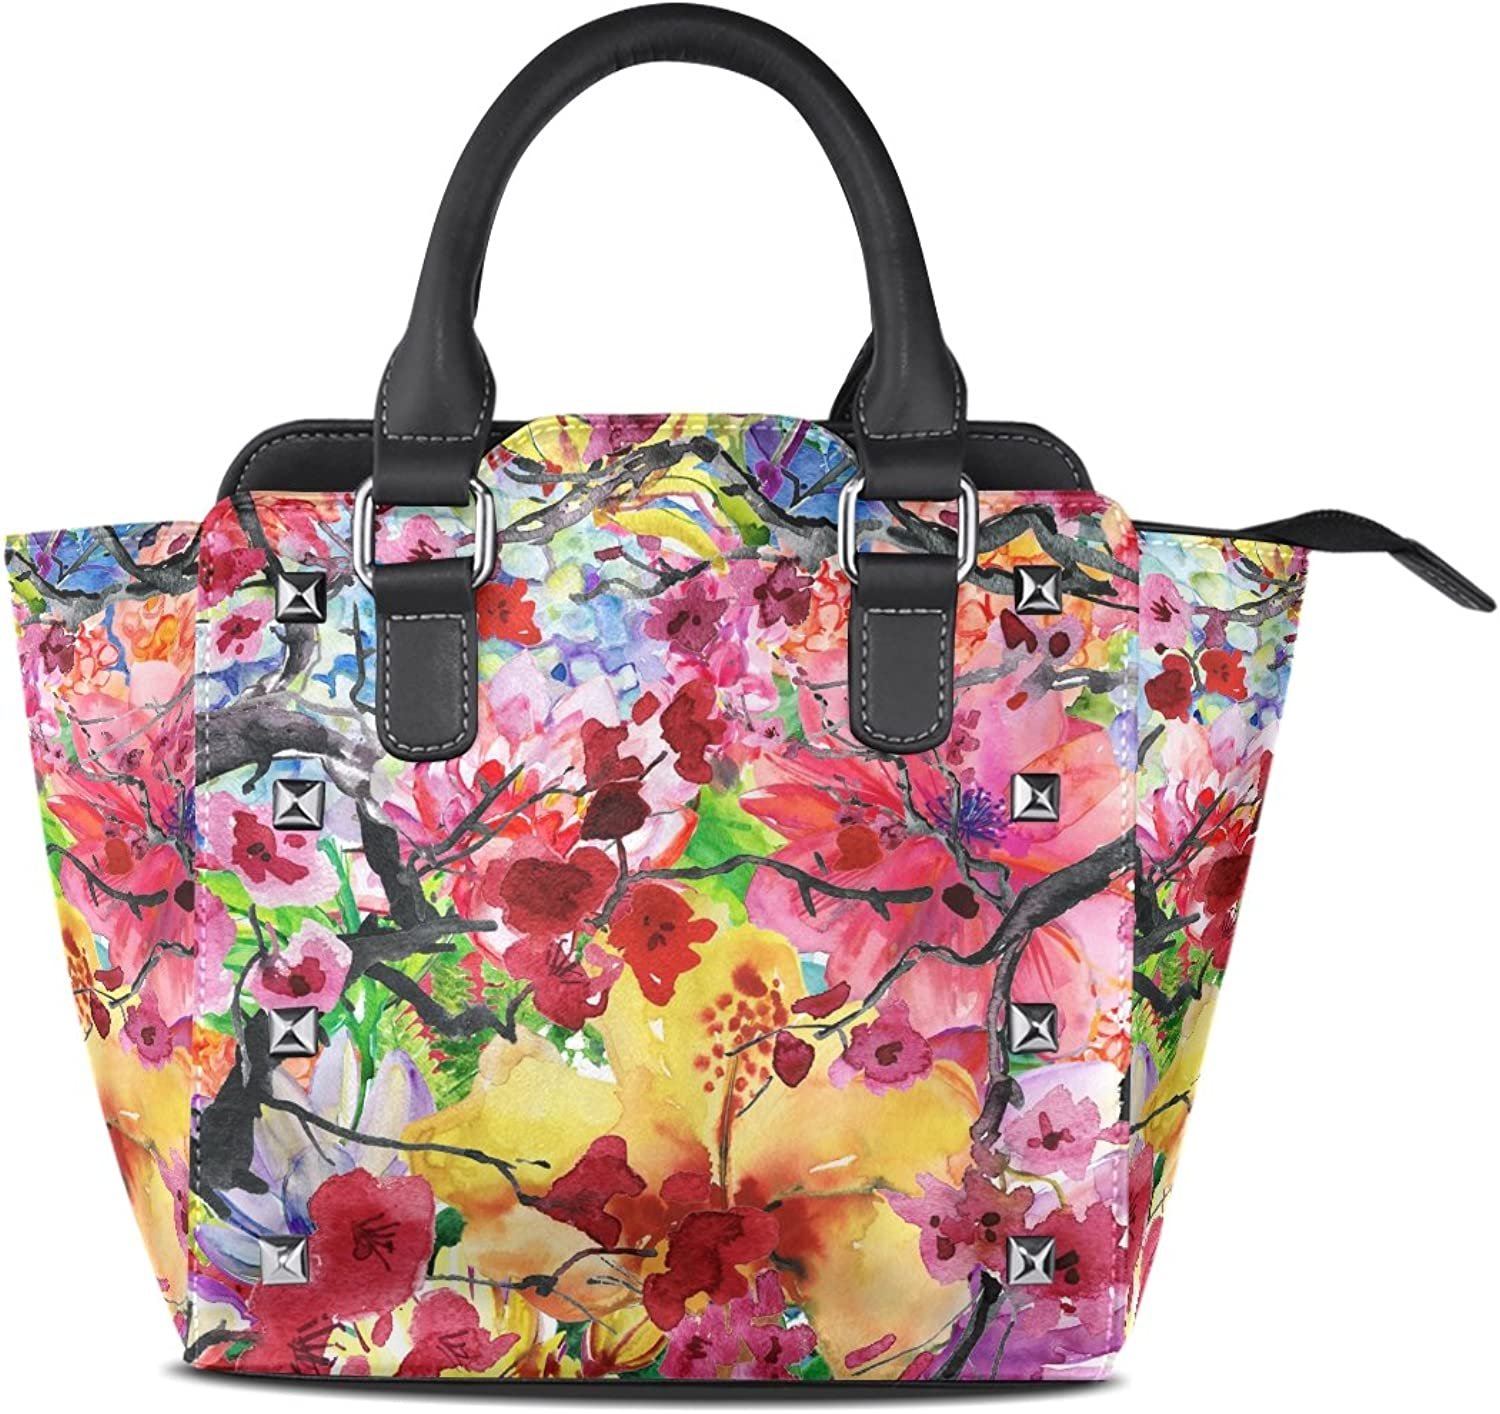 My Little Nest Women's Top Handle Satchel Handbag Beautiful Watercolor Flowers Ladies PU Leather Shoulder Bag Crossbody Bag